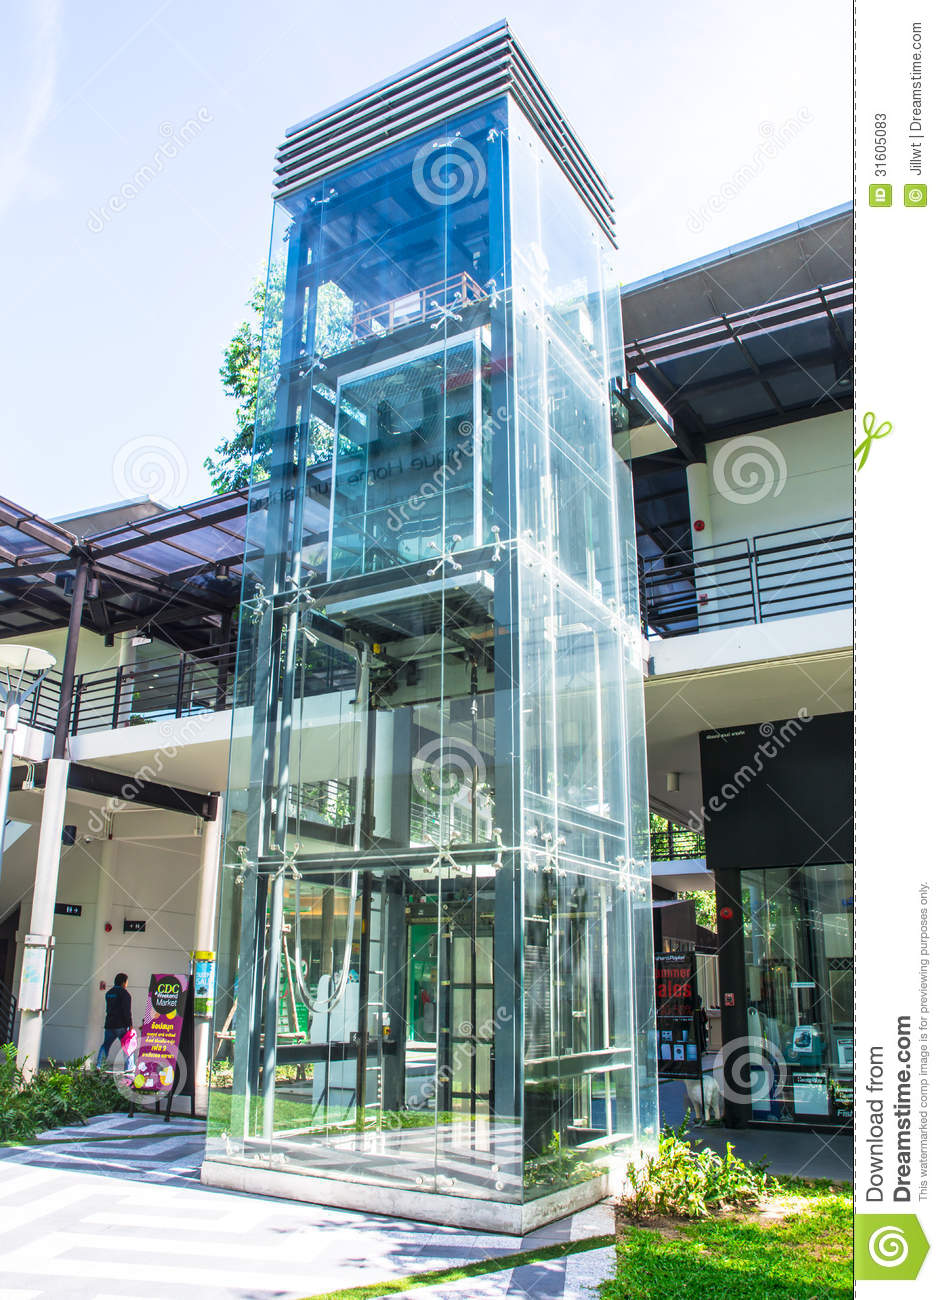 design-modern-elevator-glass-bangkok-thailand-april-construction-31605083.jpg